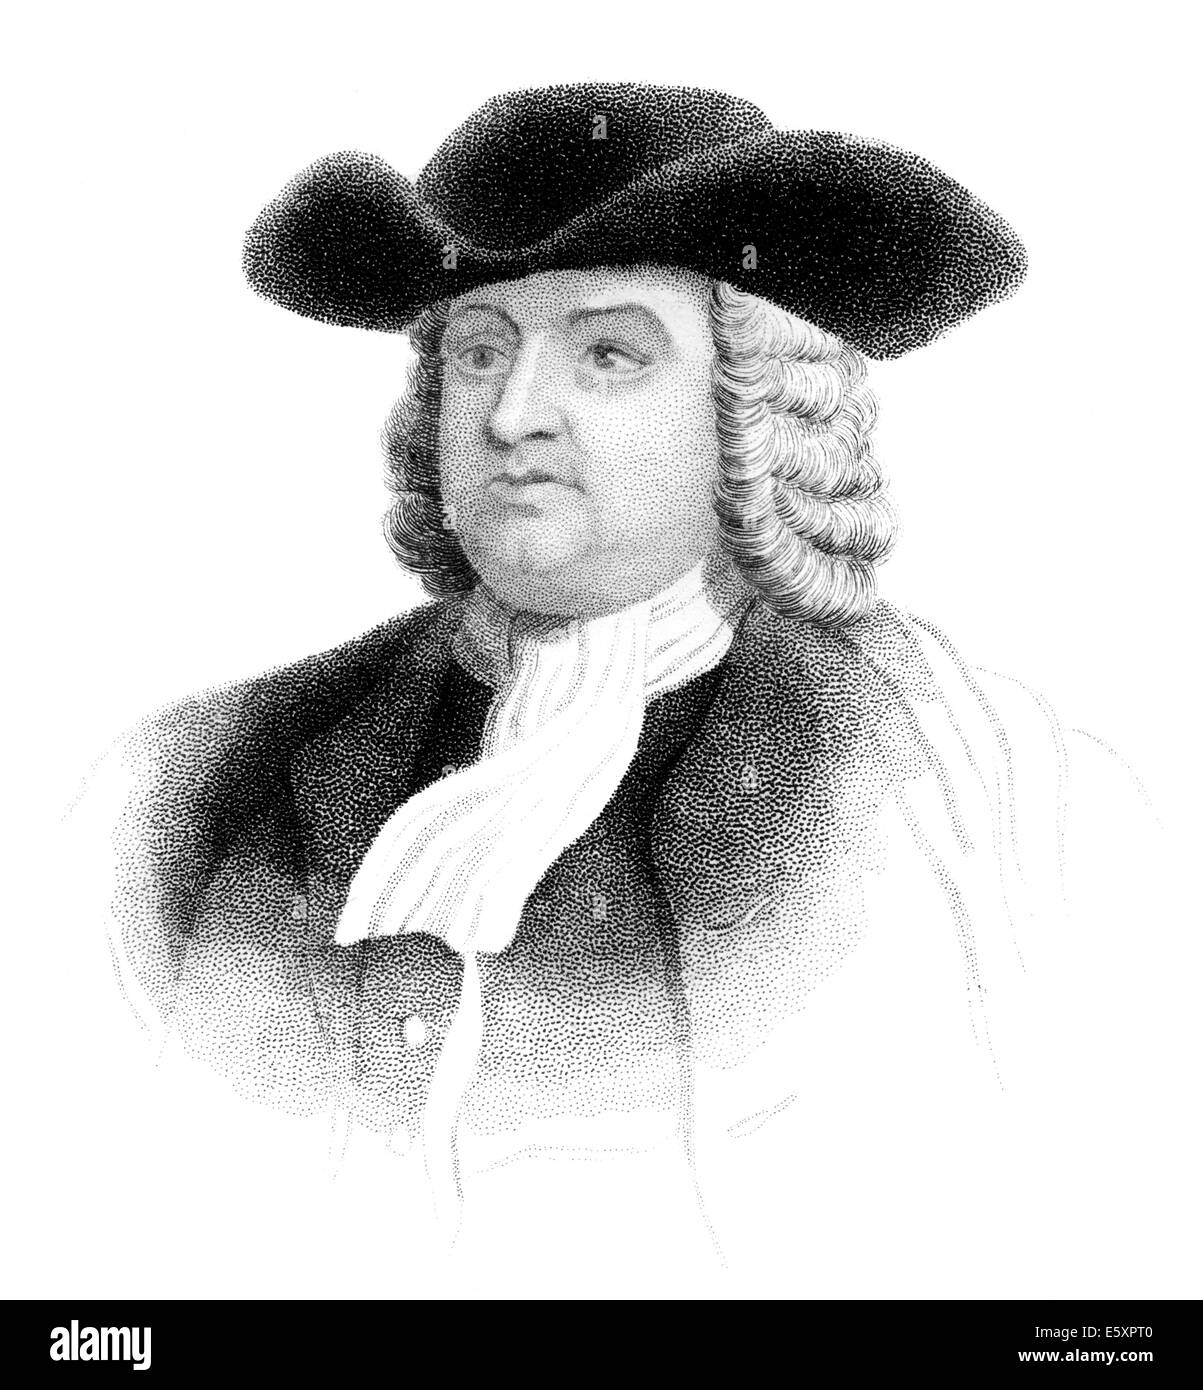 William Penn, 1644 - 1718, founder of the colony of Pennsylvania, - Stock Image